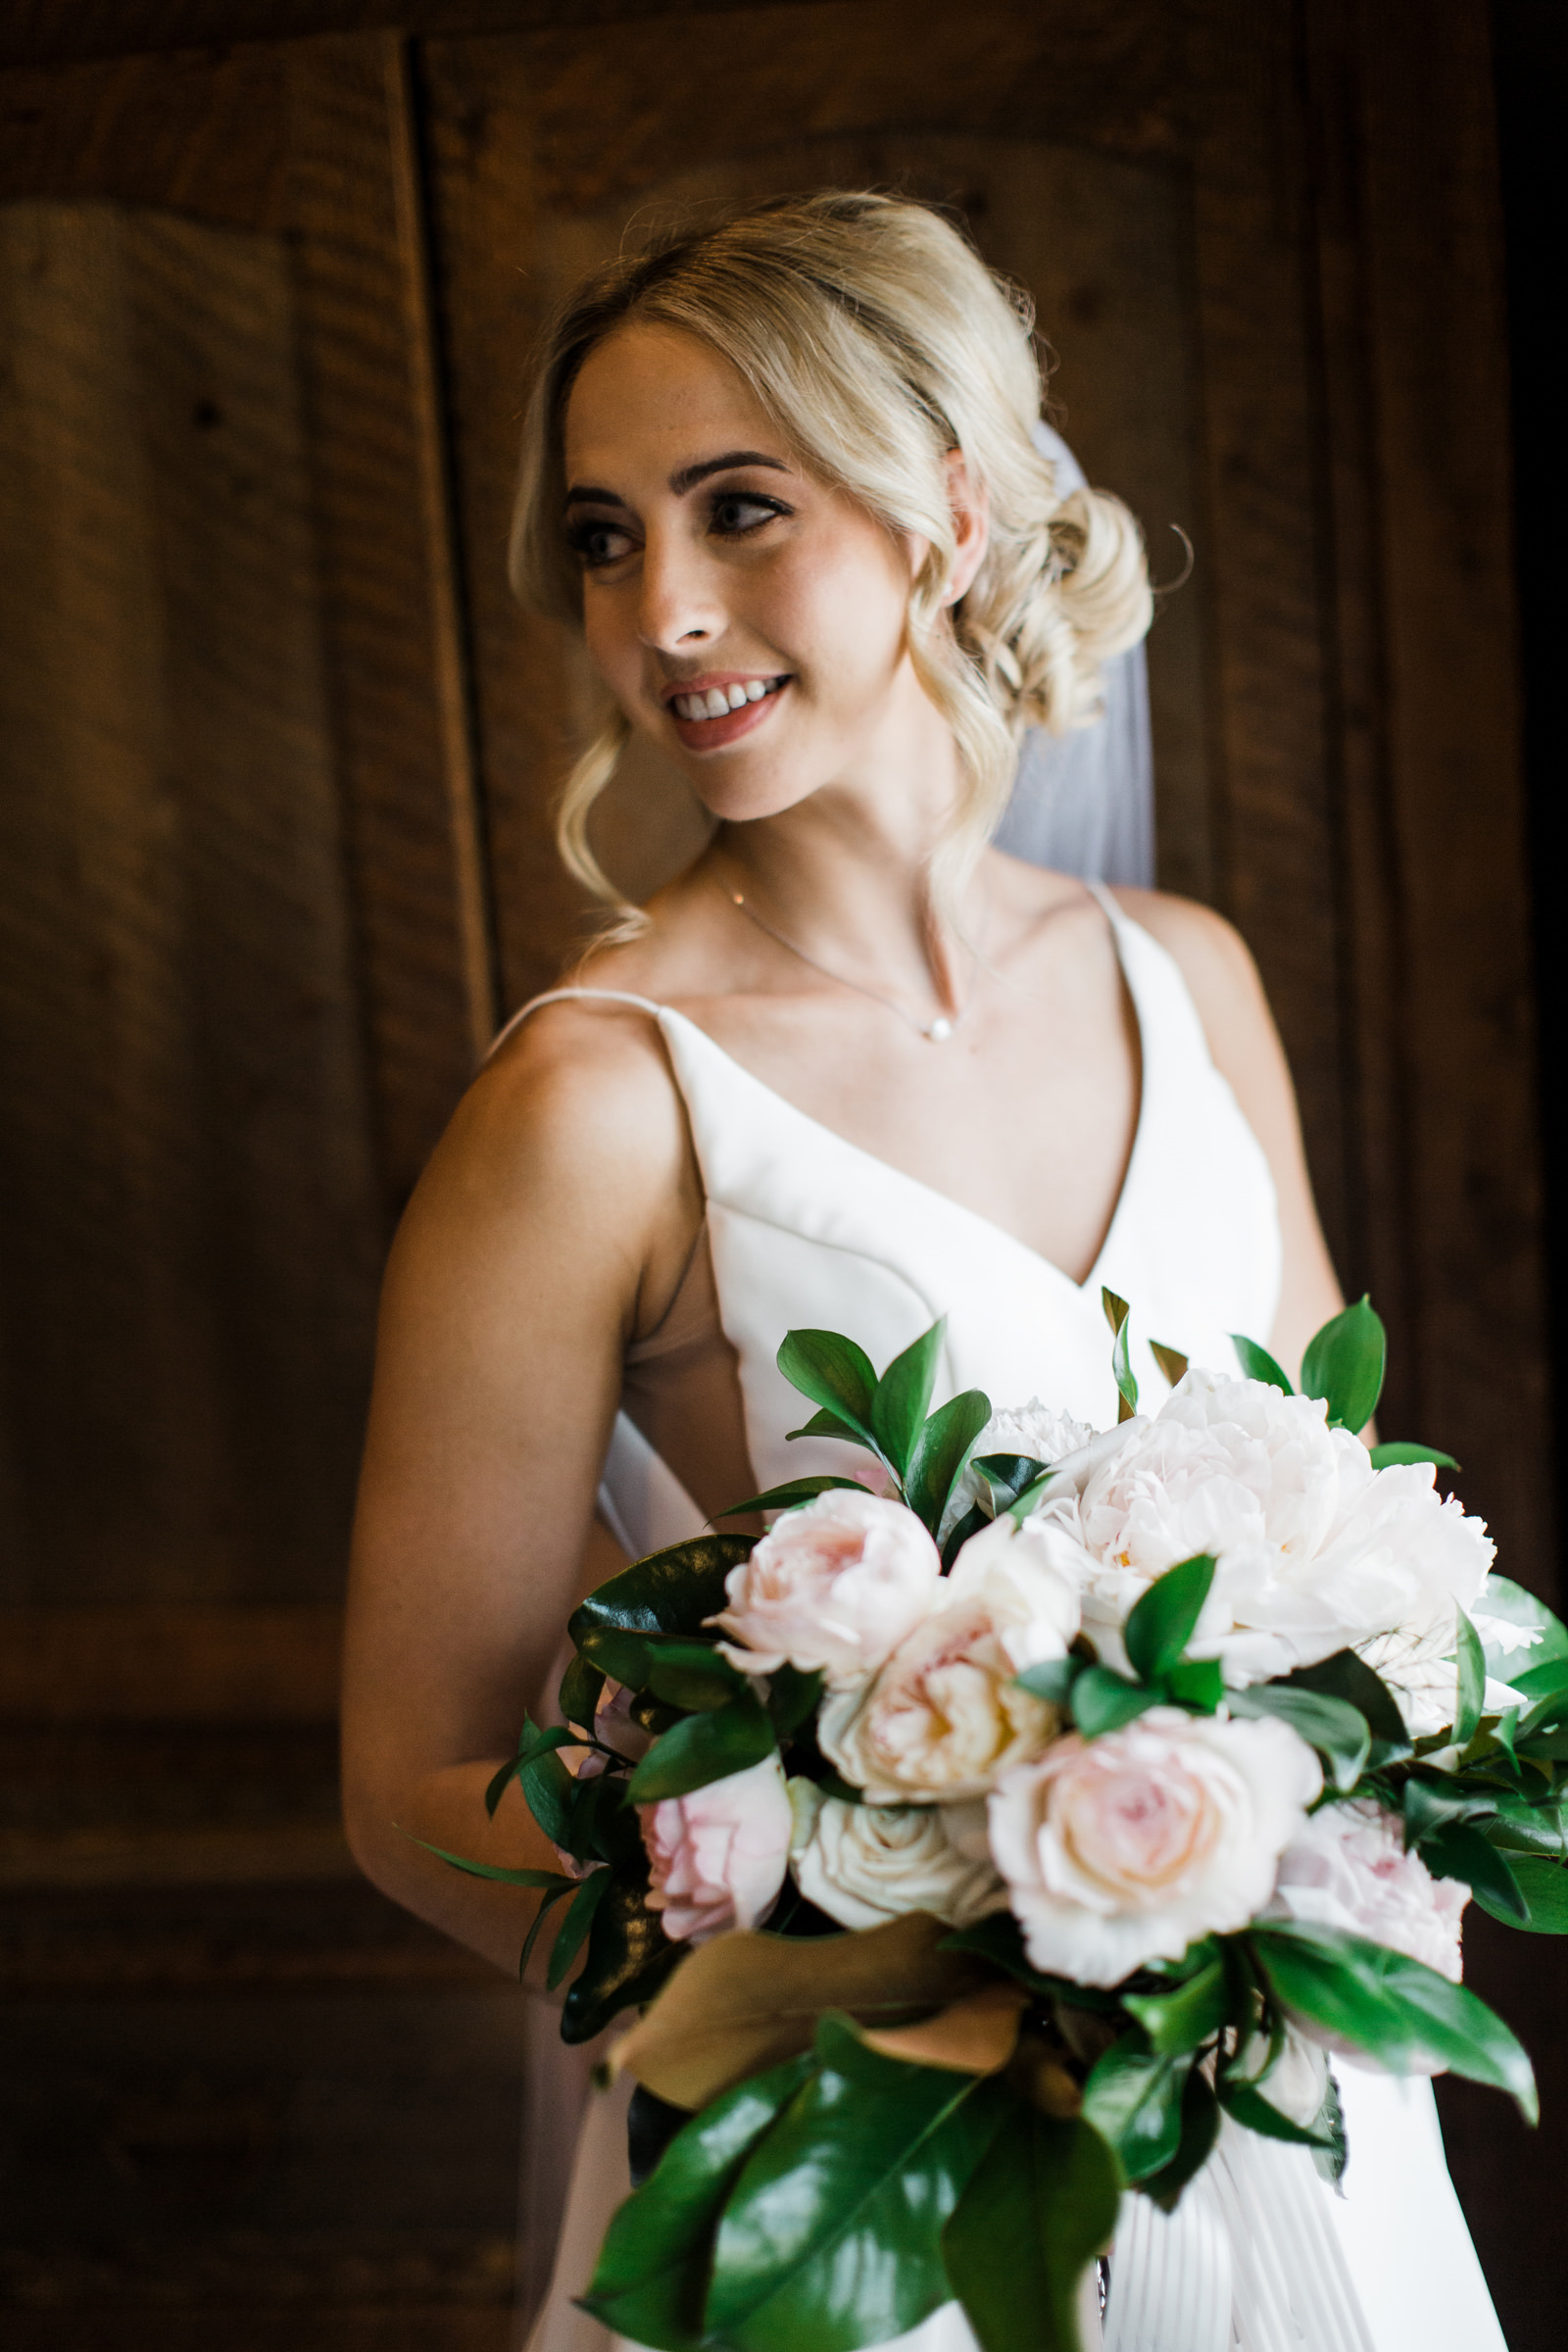 Bride holding large pink peony bouquet - photo by Stephanie Cristalli Photography